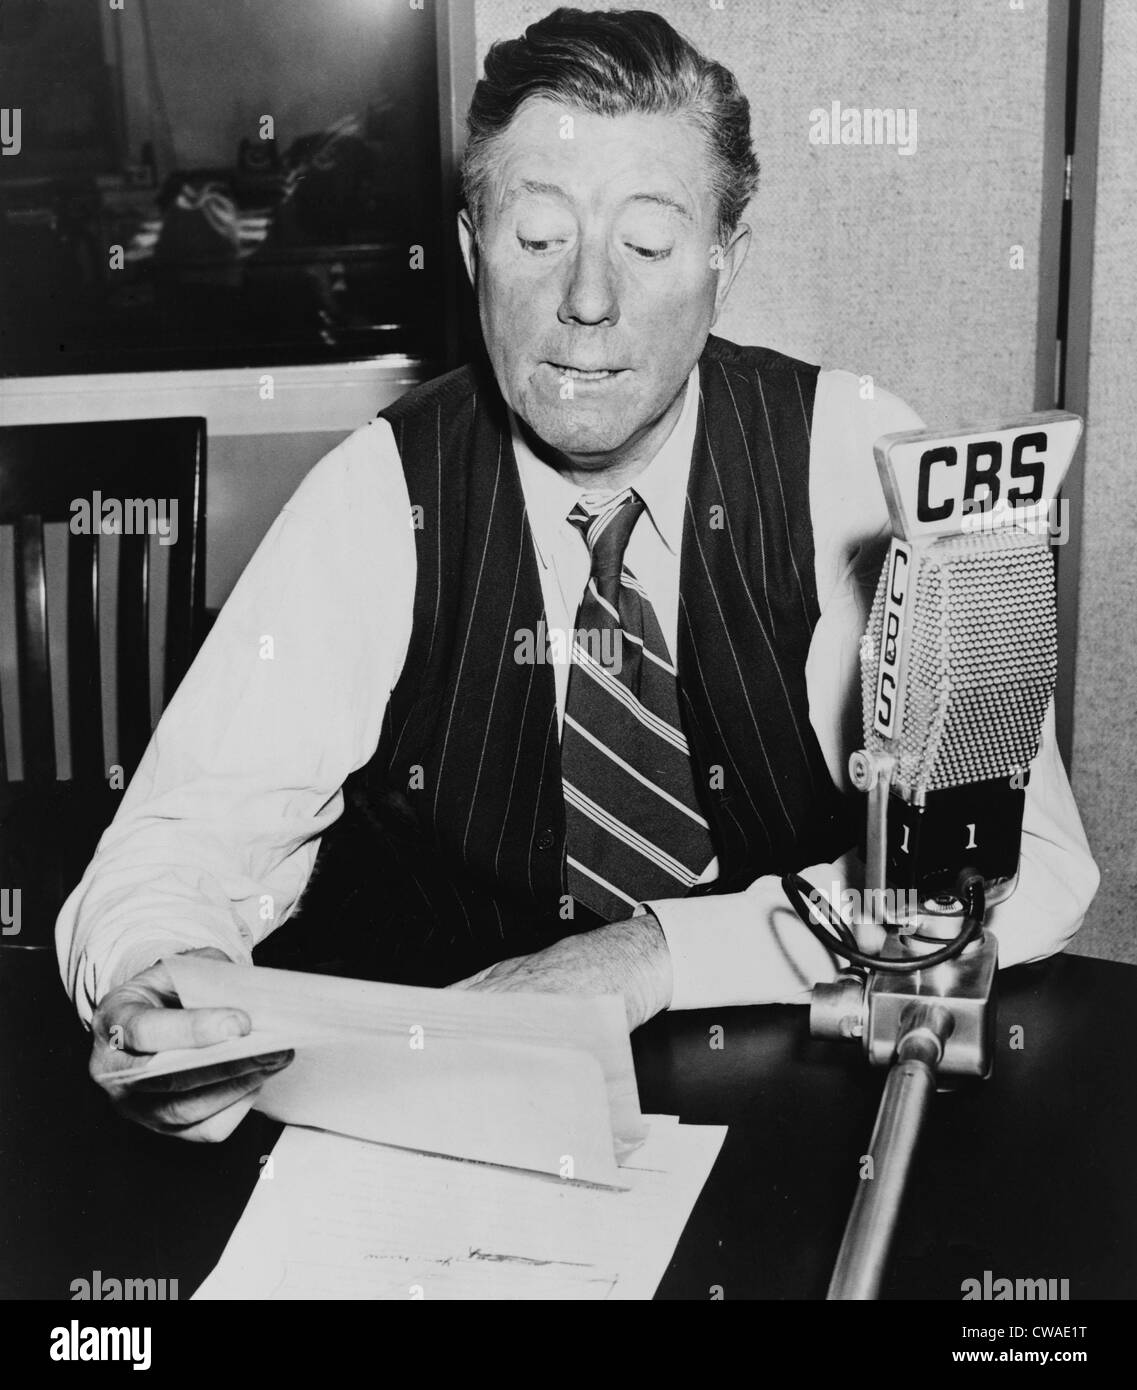 Frazier Hunt, (1885- ) early newscaster, seated at desk behind CBS microphone. 1941. - Stock Image